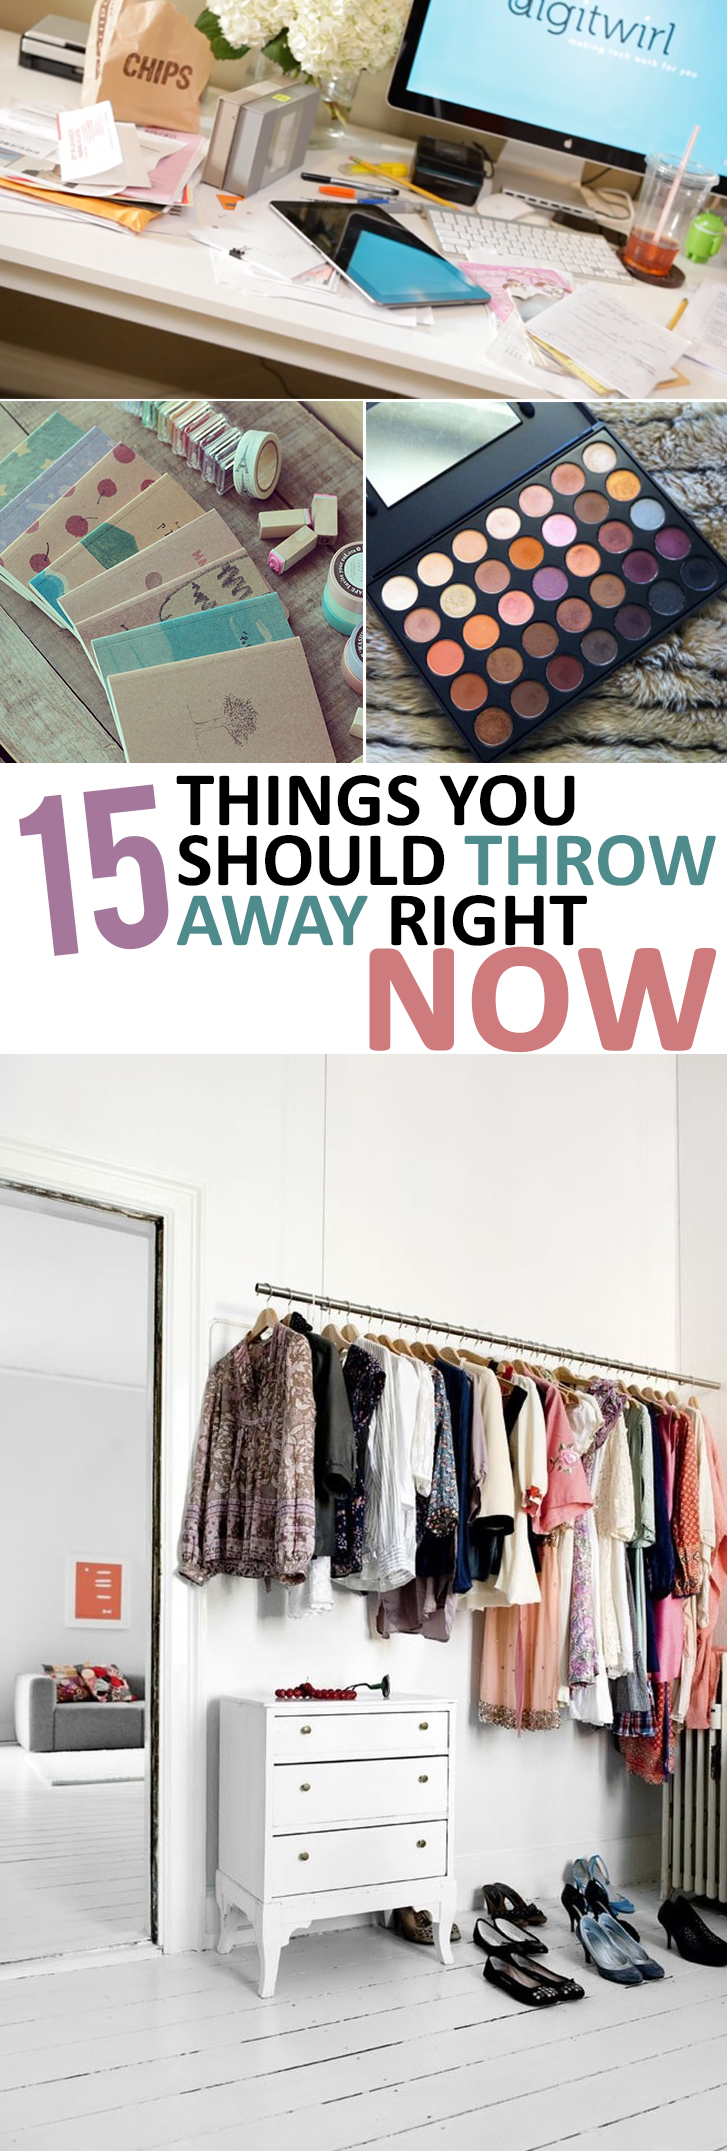 15-things-you-should-throw-away-right-now